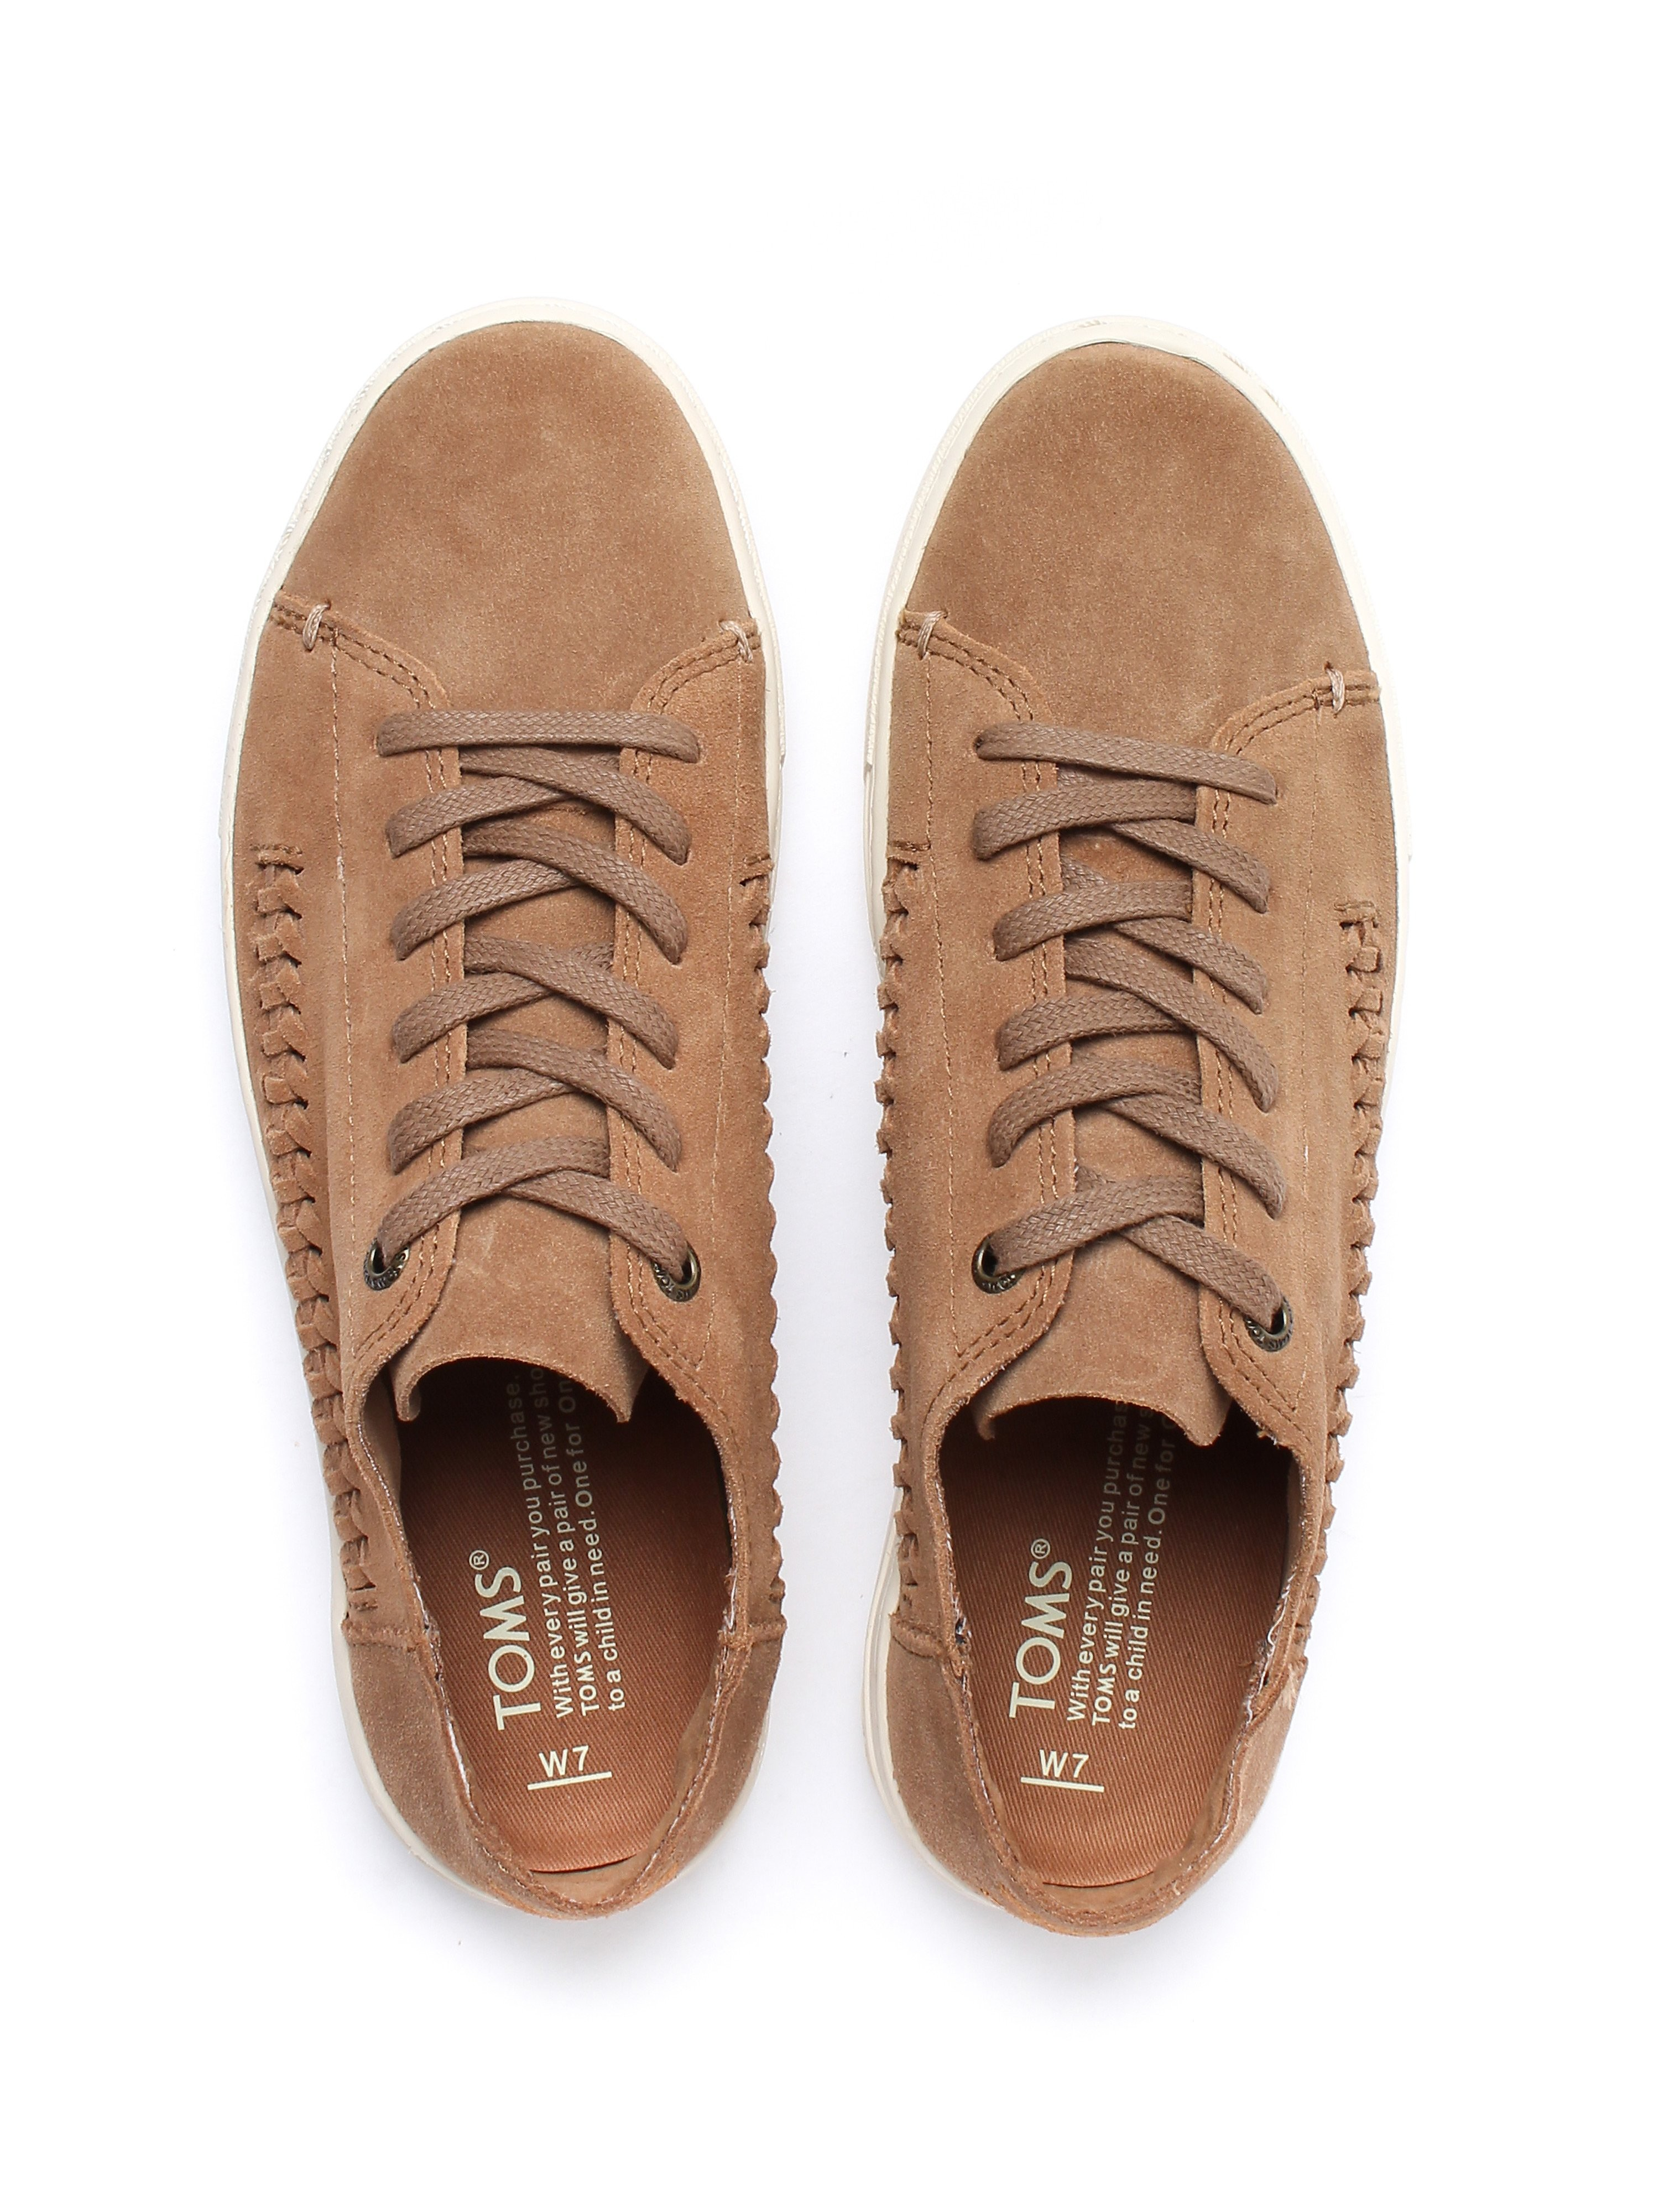 Toms Women's Lenox Deconstructed Trainers - Toffee Suede